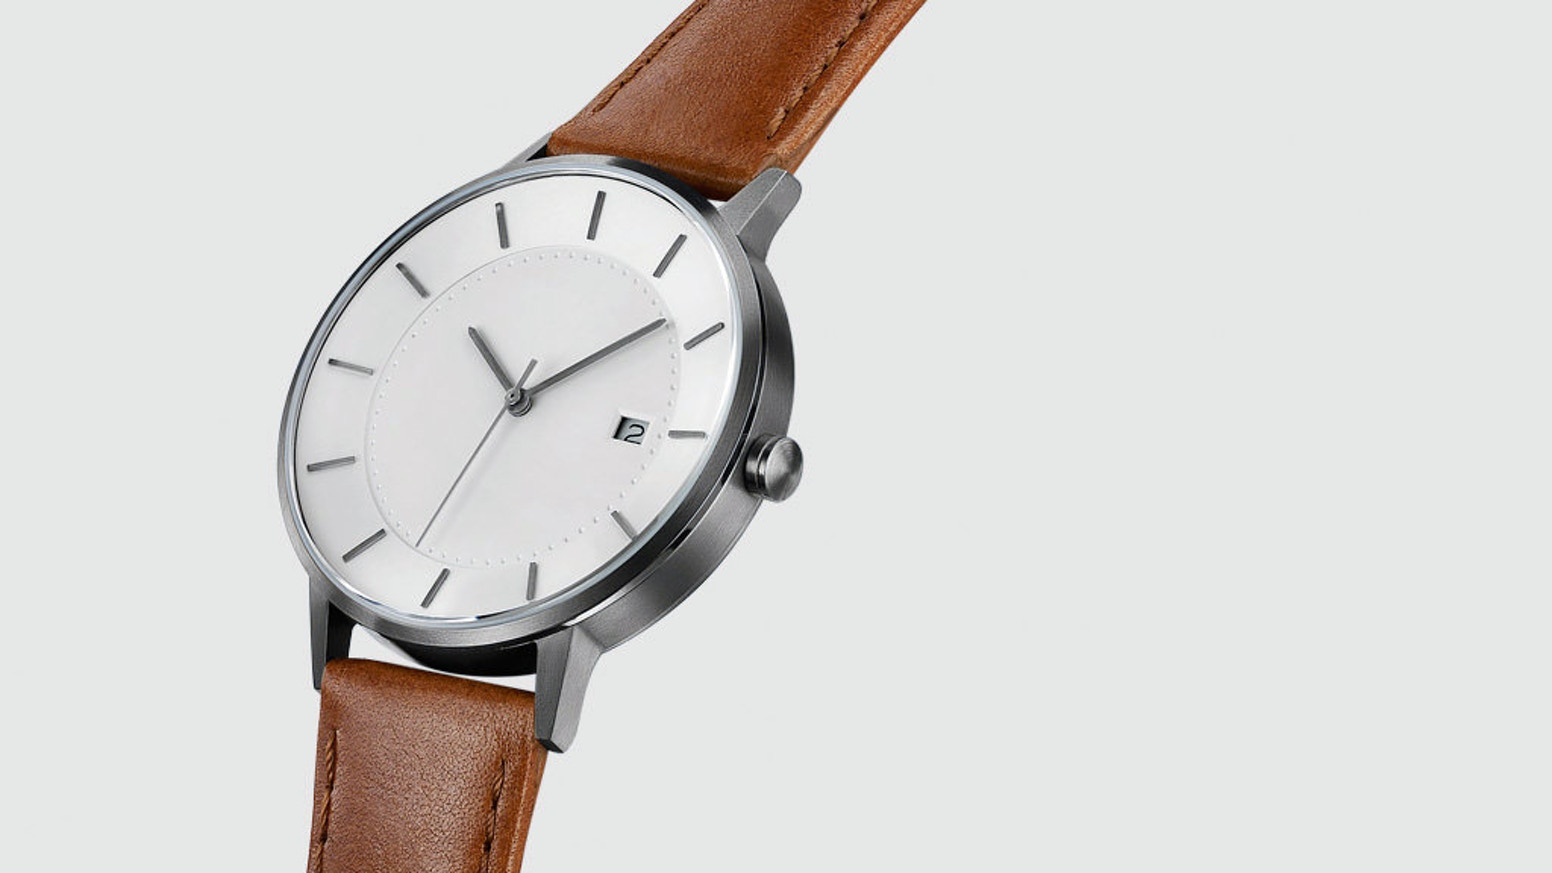 Elegant, high-quality watches with premium components, including a Swiss movement and Italian leather straps.